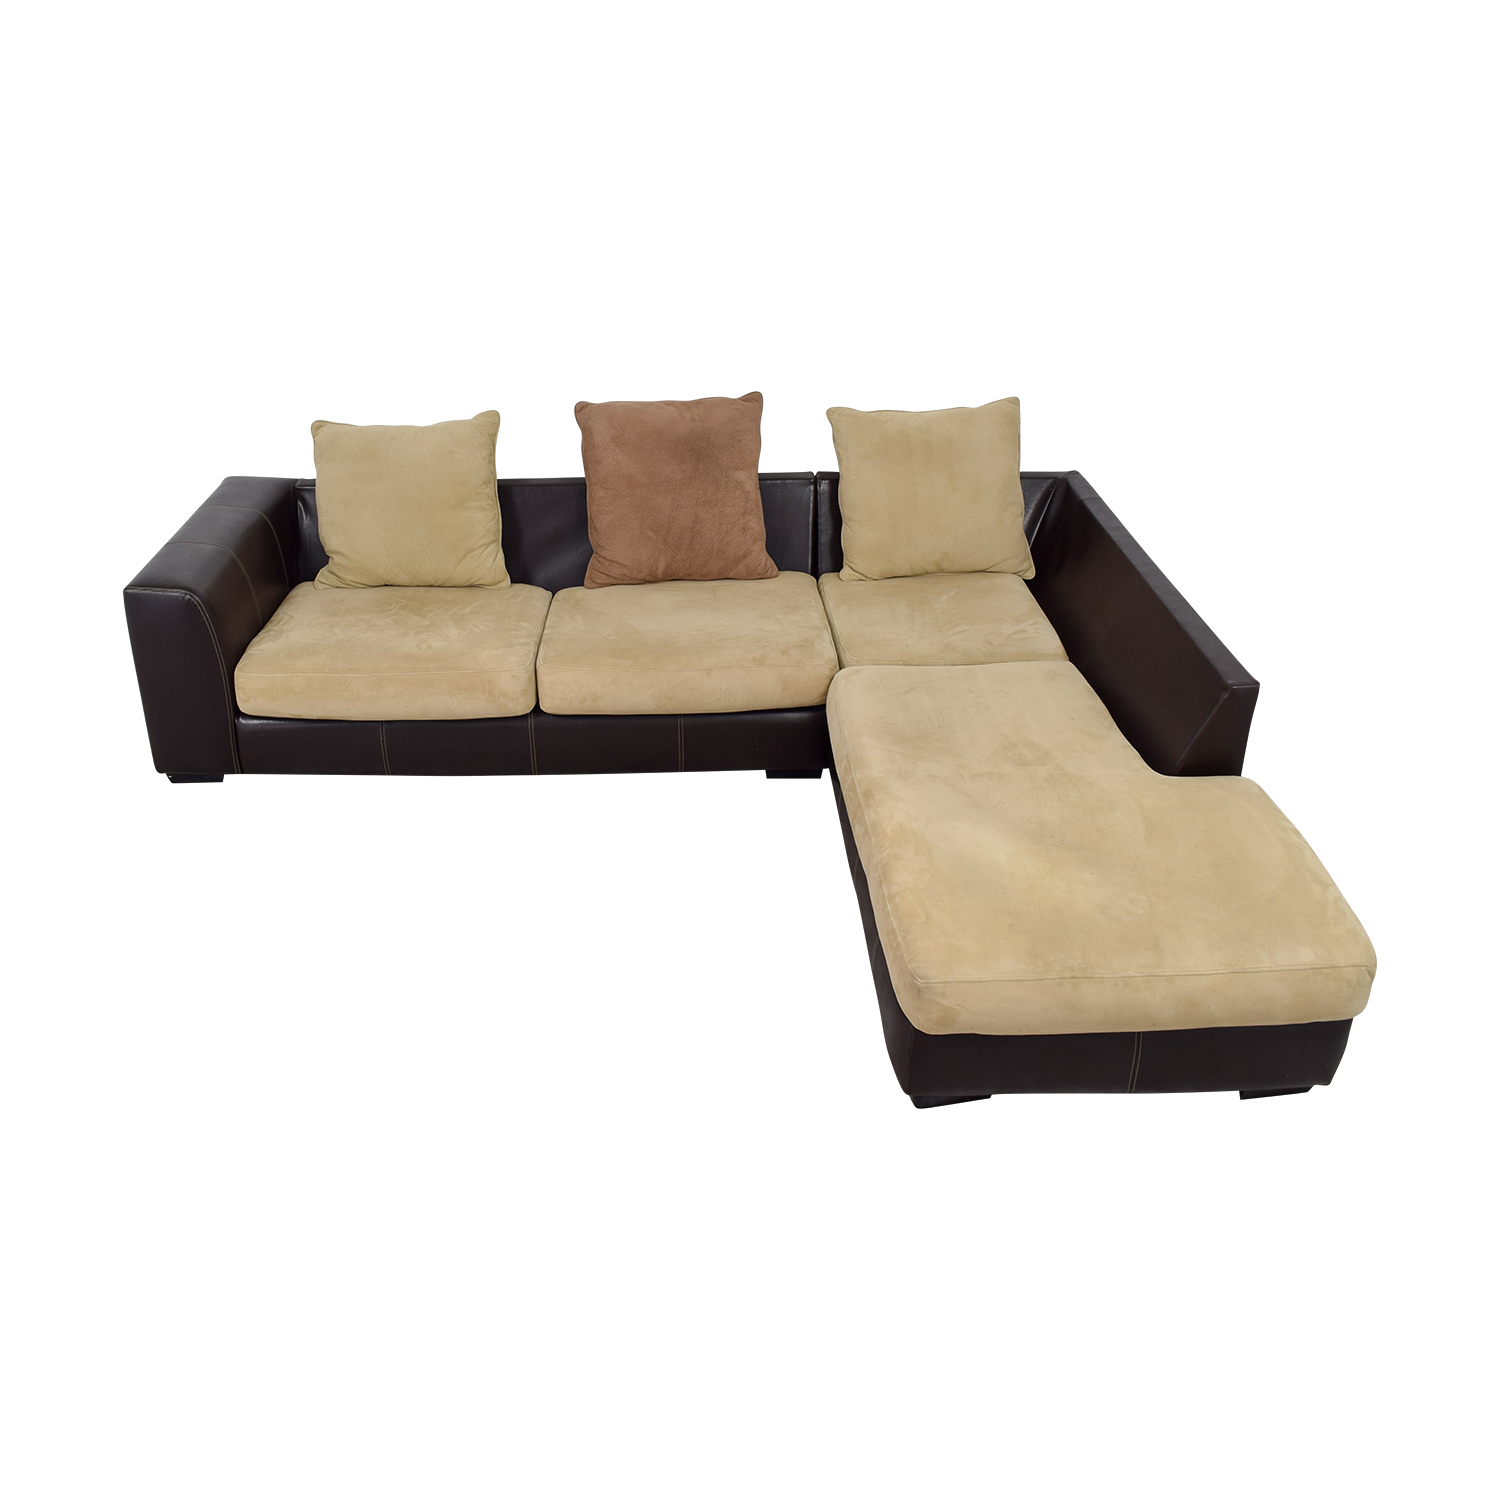 buy  L -Shaped Brown Leather and Tan Fabric Sectional online